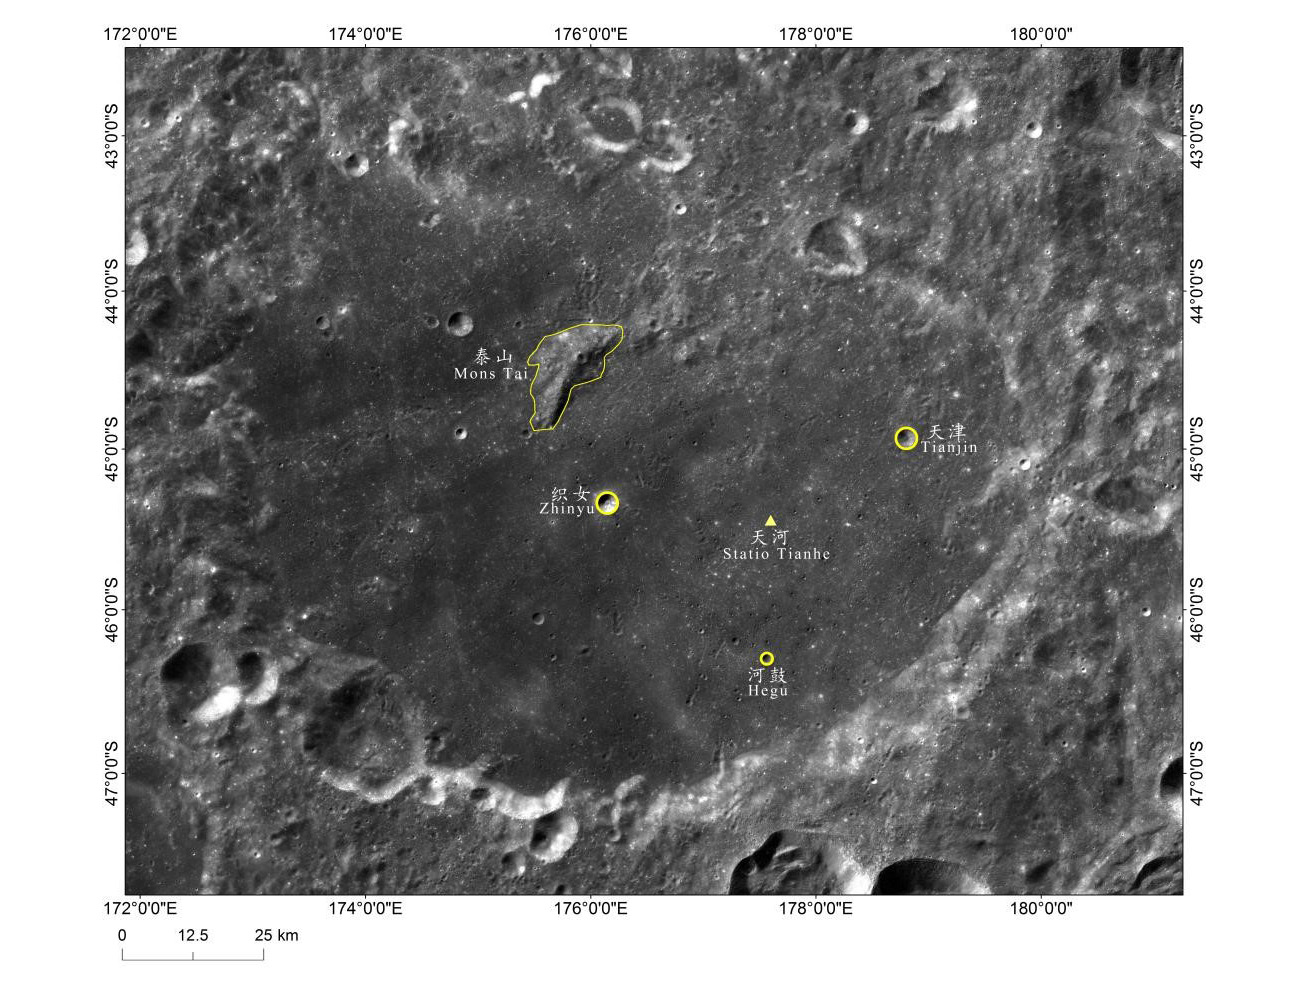 International Astronomical Union approves name of Chang'e-4 probe landing point